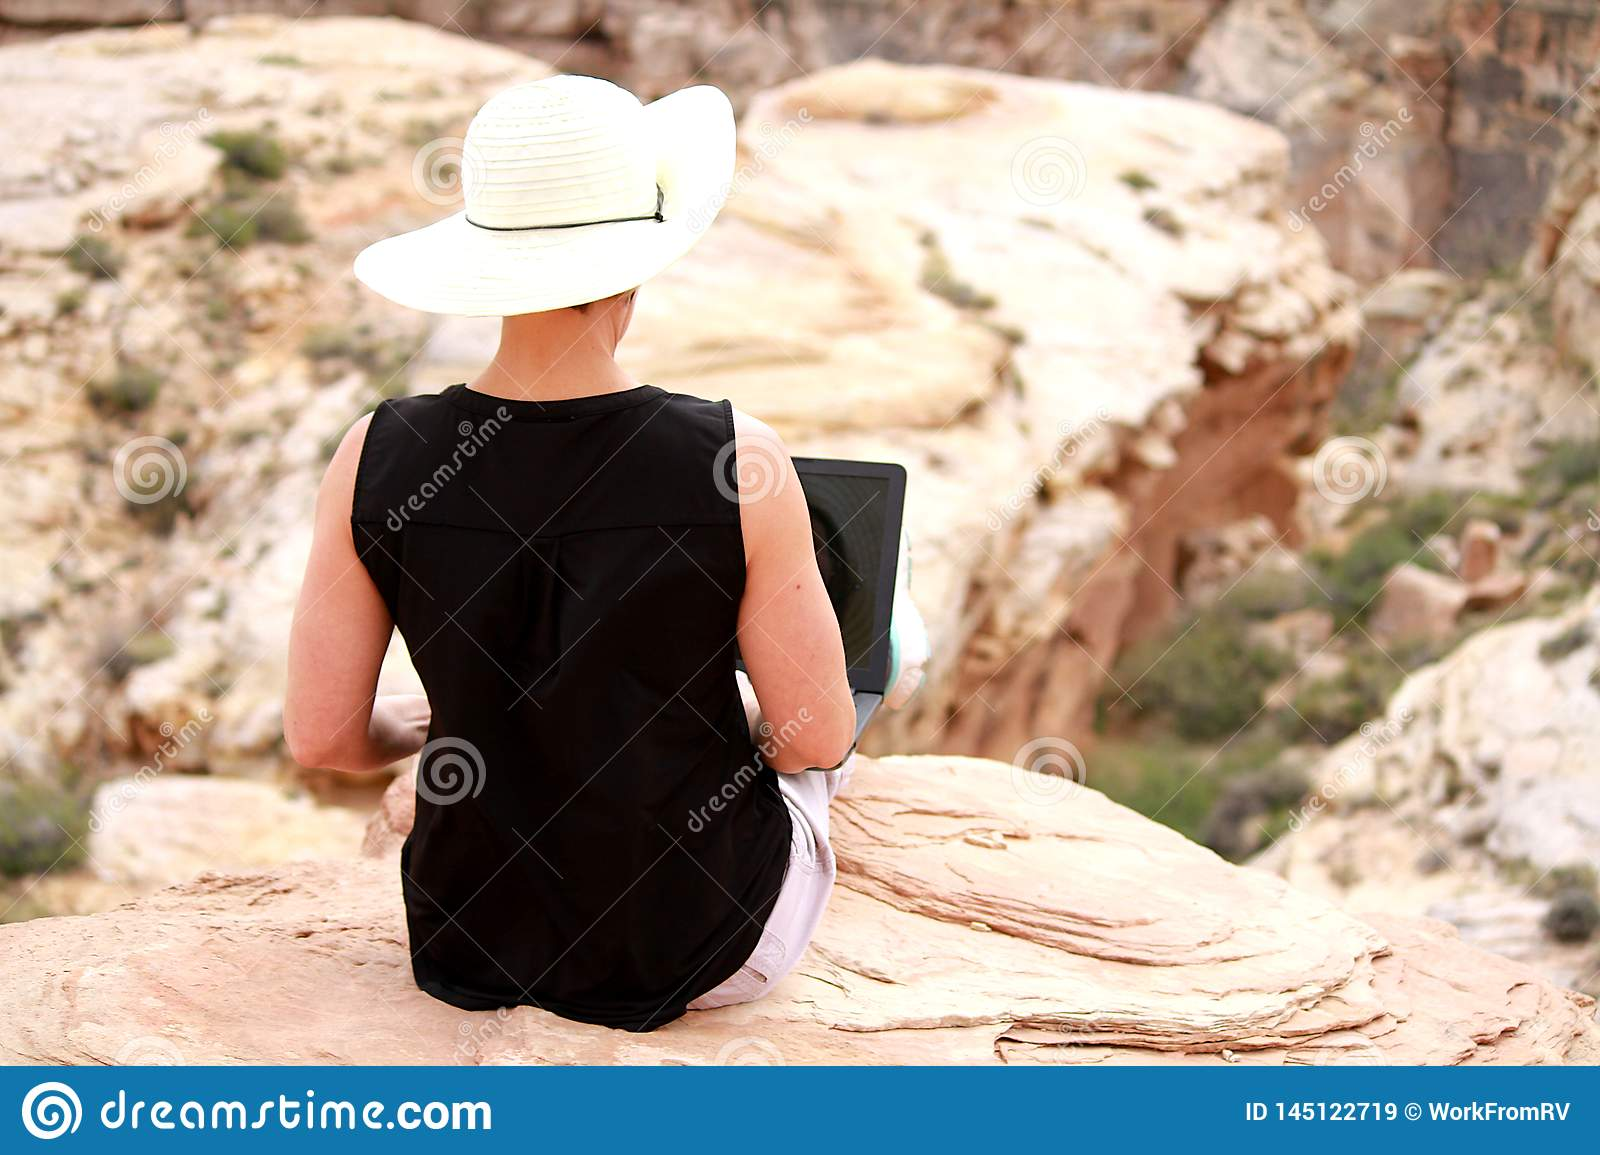 Woman working on laptop computer high up on rocks.